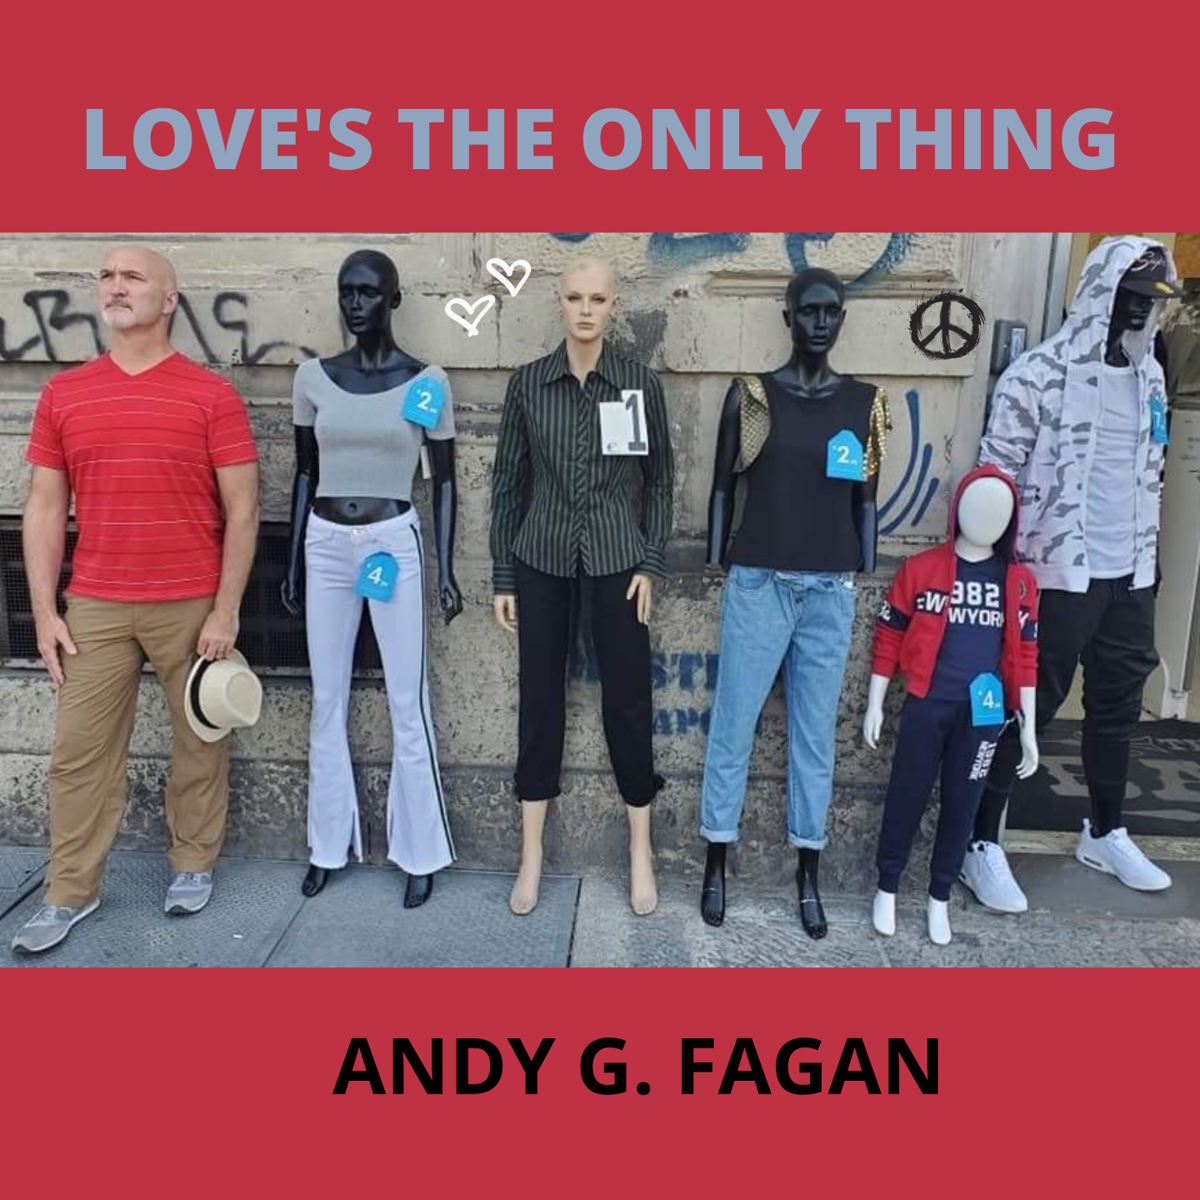 Latest album from local musician all about love